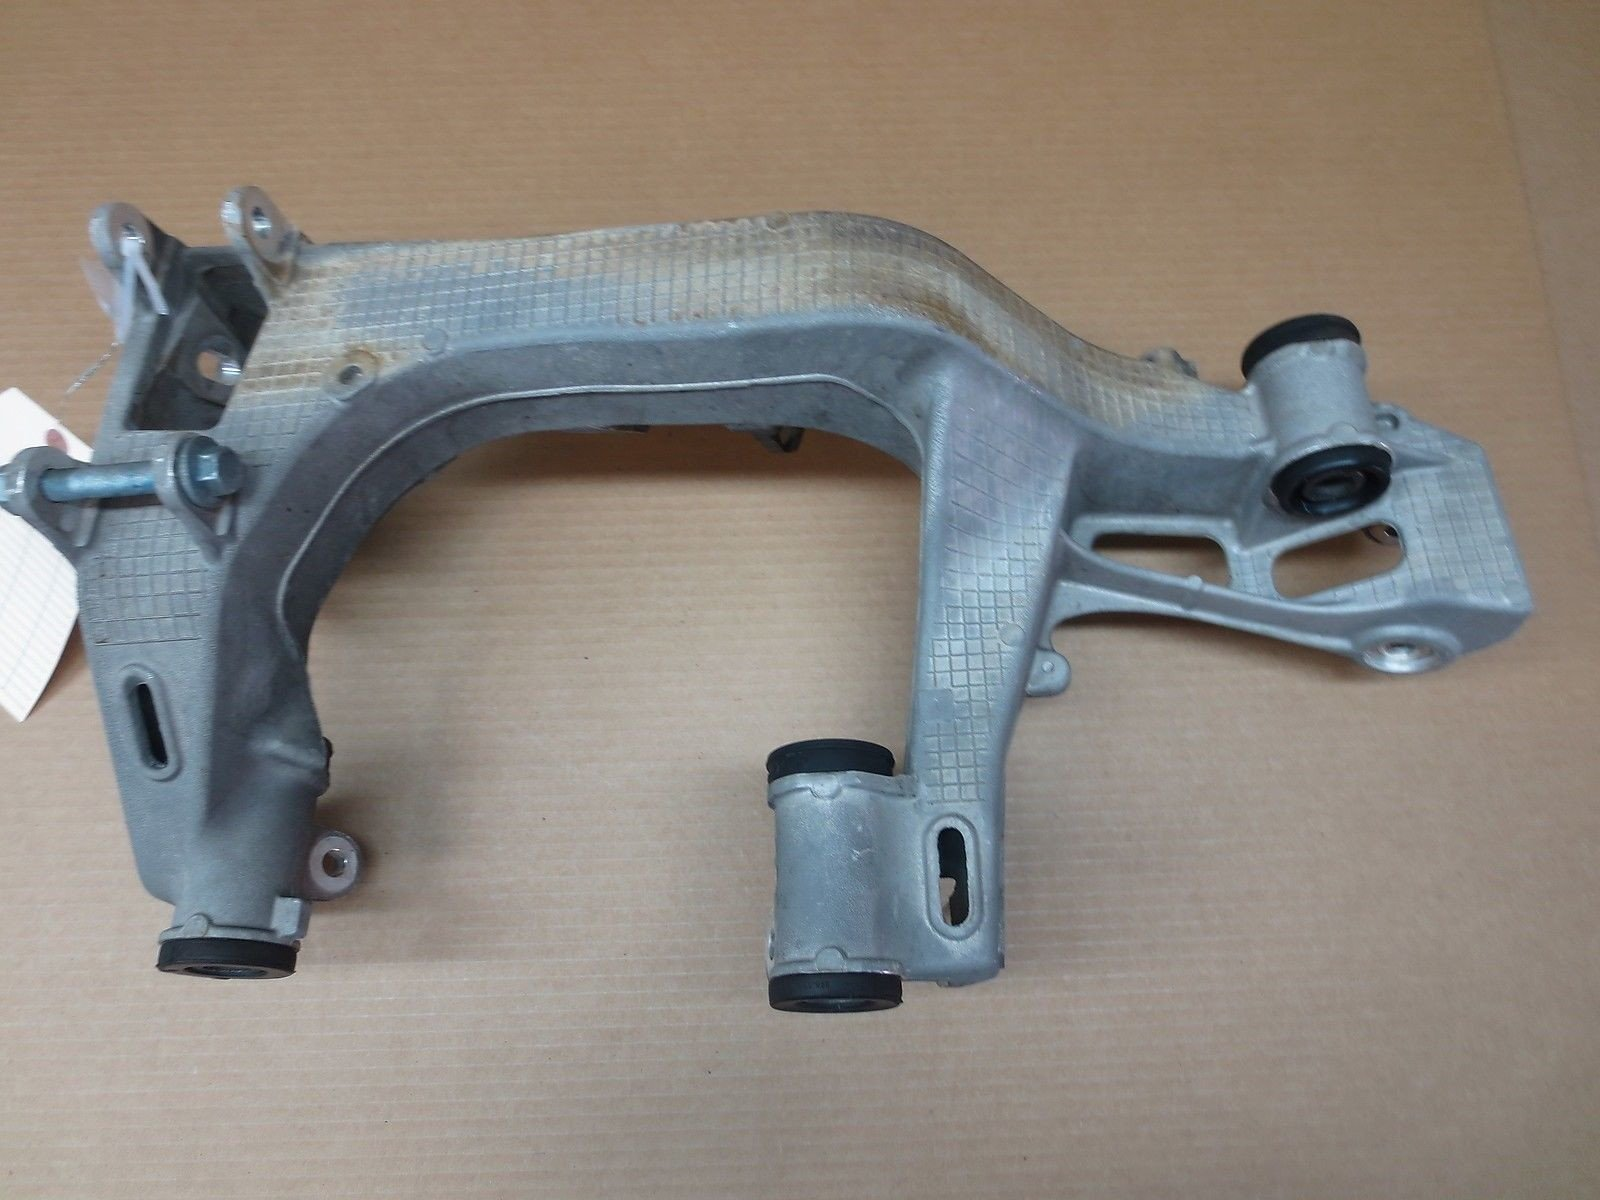 05 Carrera 911 Porsche 997 R Rear SUBFRAME 99733115203 suspension Bracket 16,012